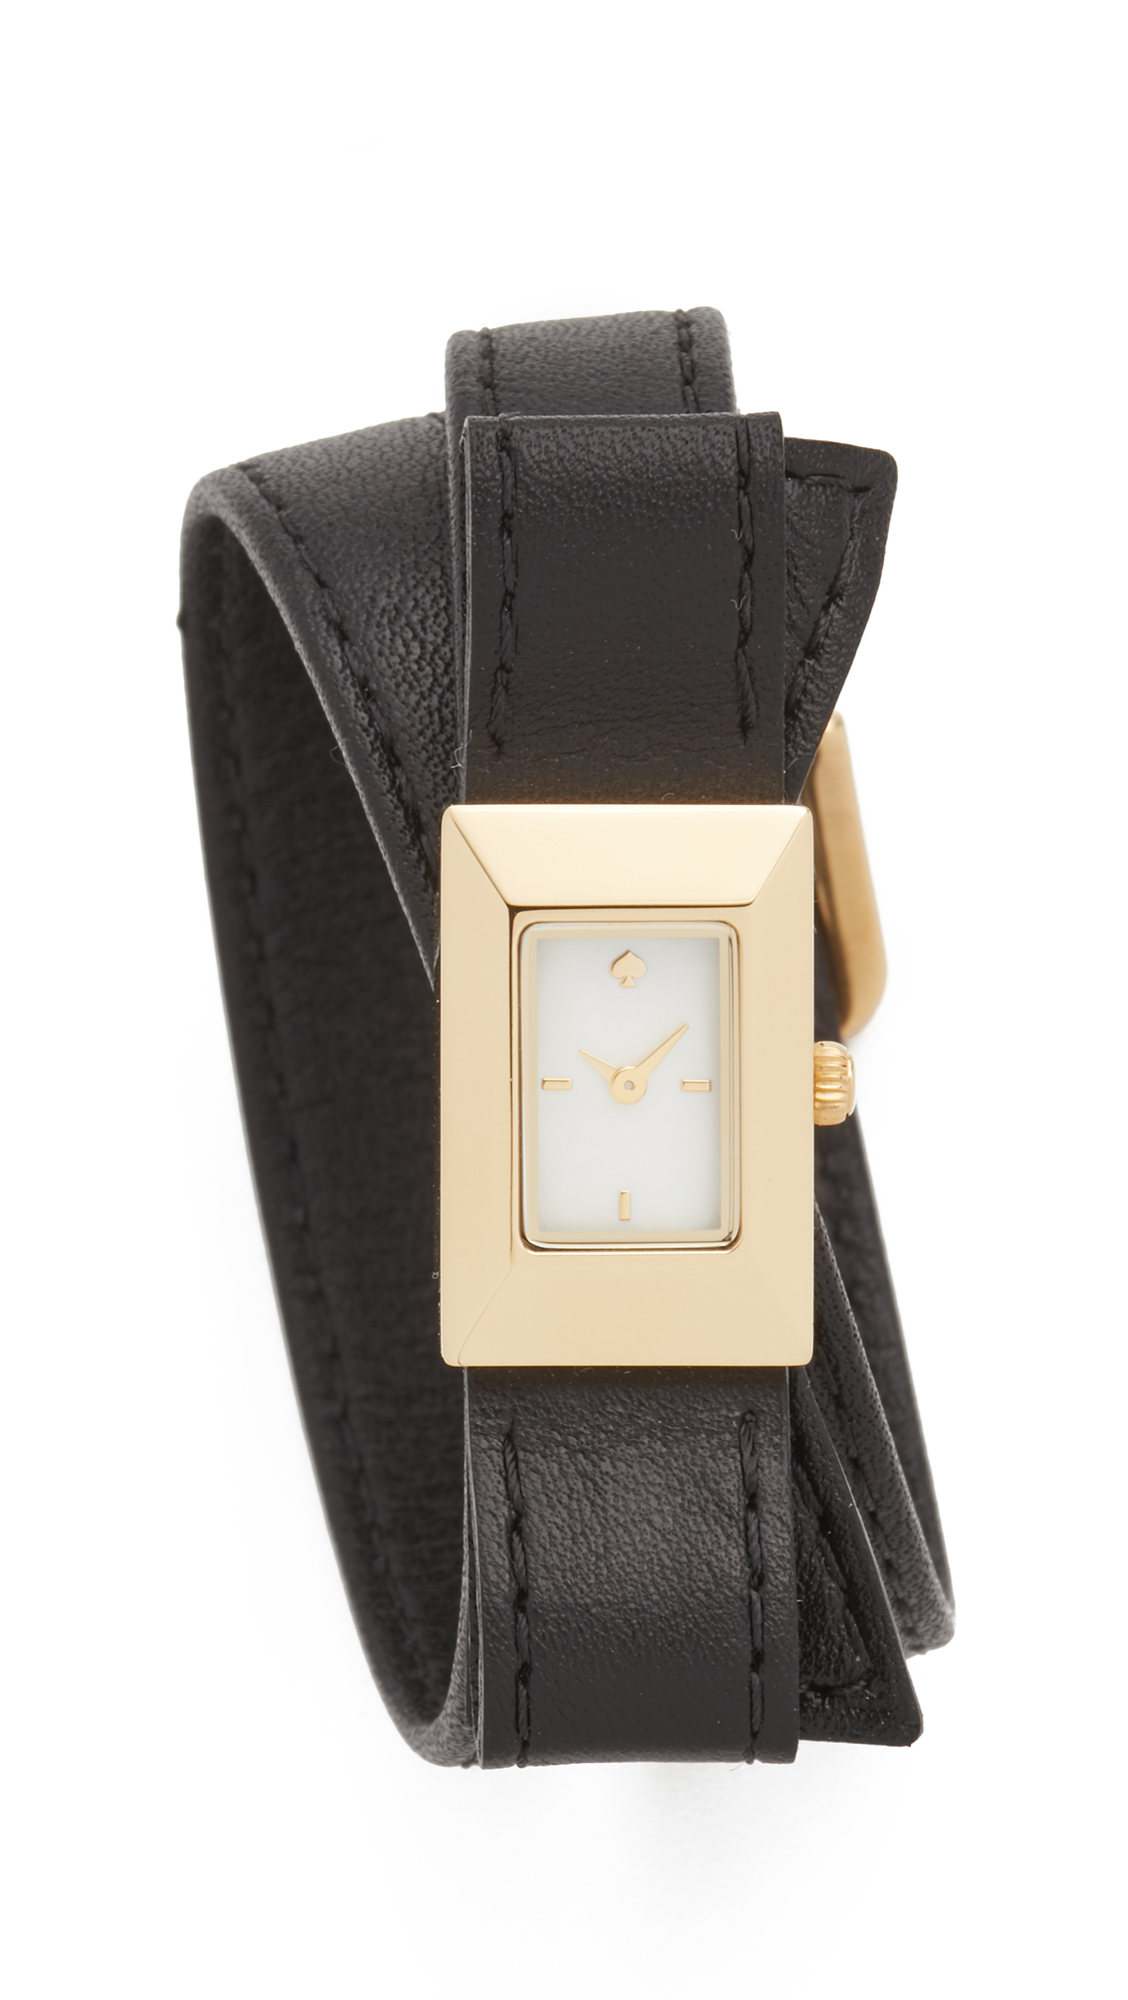 Kate Spade New York Kenmare Double Wrap Watch - Gold at Shopbop